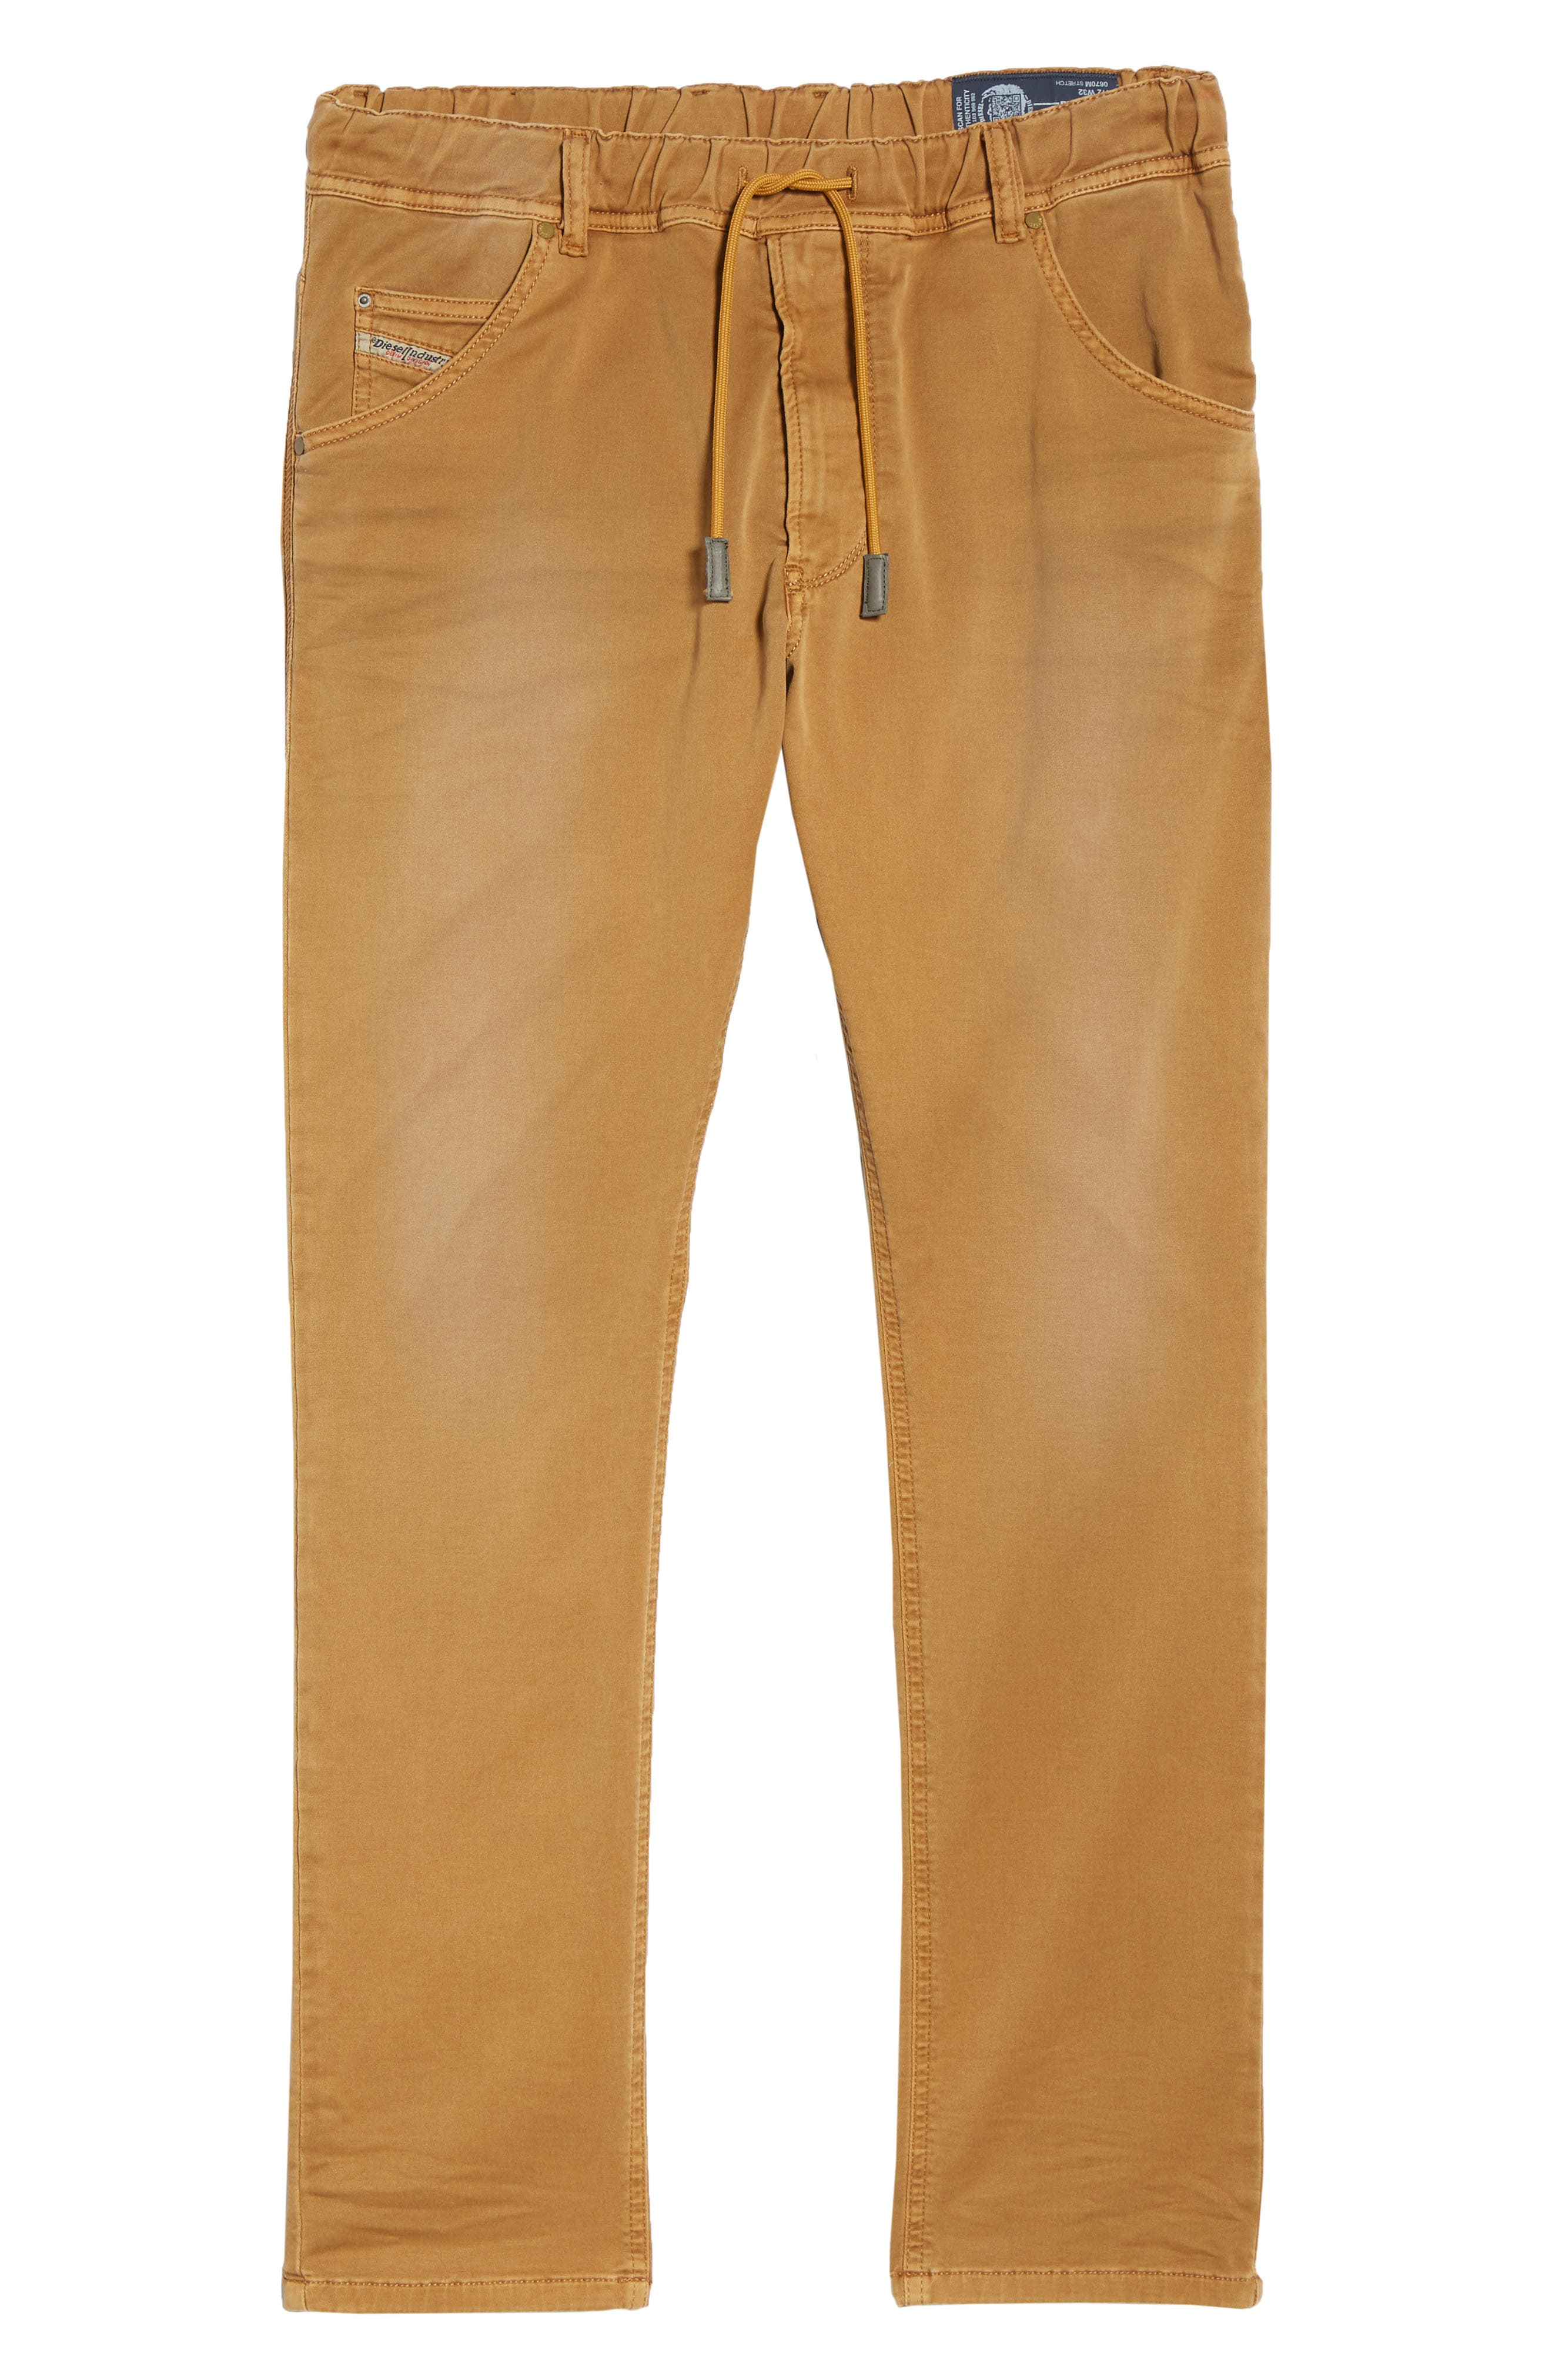 Krooley Slouchy Skinny Fit Jeans,                             Alternate thumbnail 6, color,                             0670M